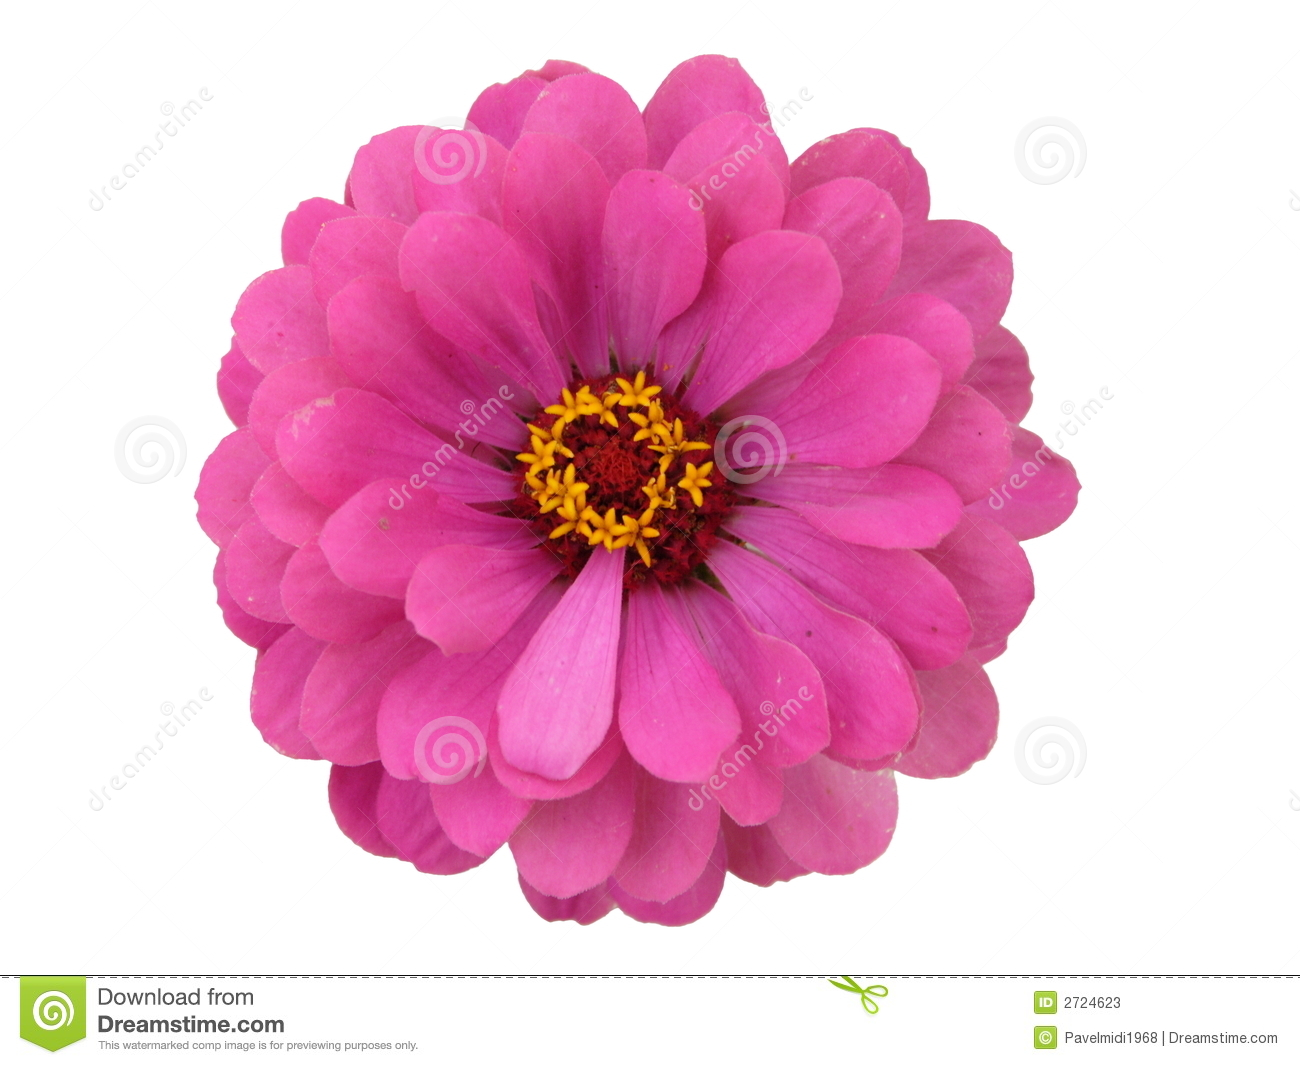 Zinnia clipart 20 free Cliparts | Download images on ...